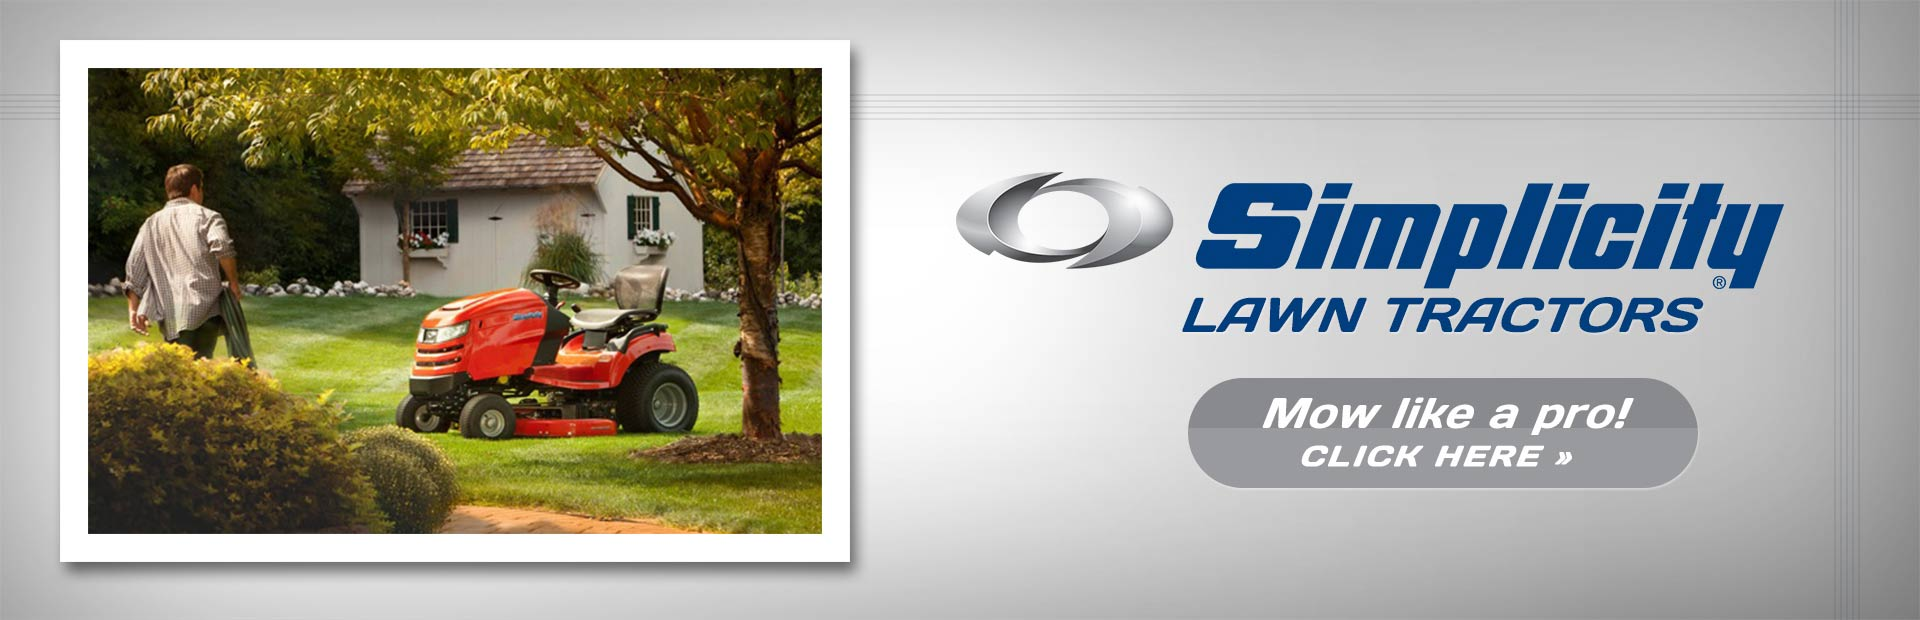 Mow like a pro with Simplicity lawn tractors! Click here to view our selection.